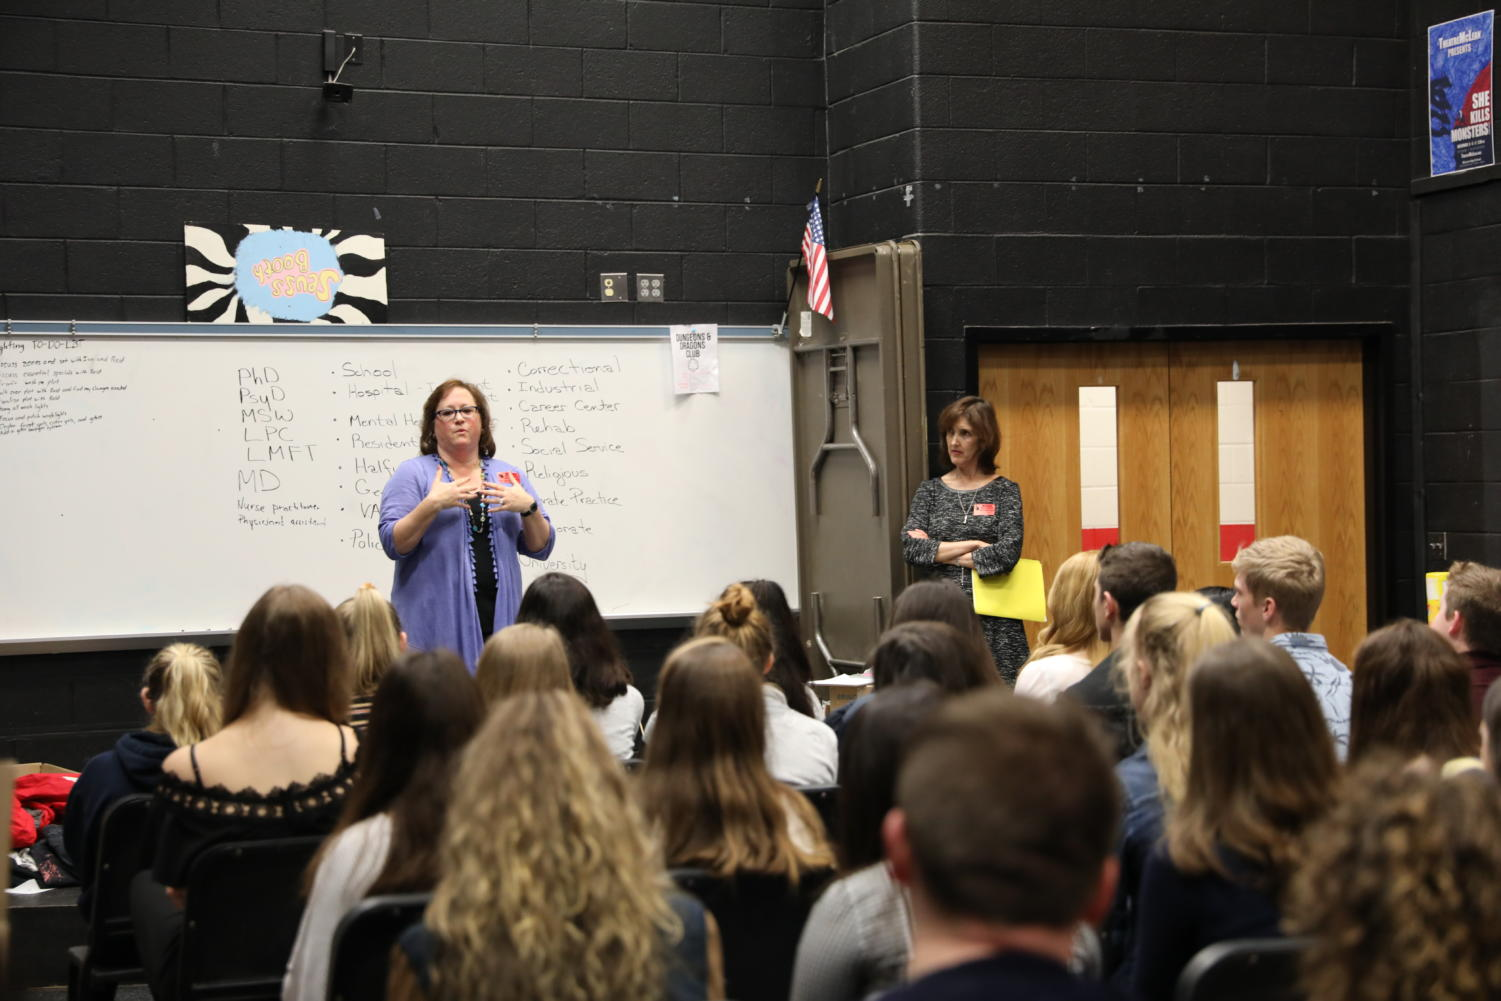 Speakers from the Health Science careers explains their professions as psychologist and psychiatrist. Sophomore Career Talks was held on Mar. 26.